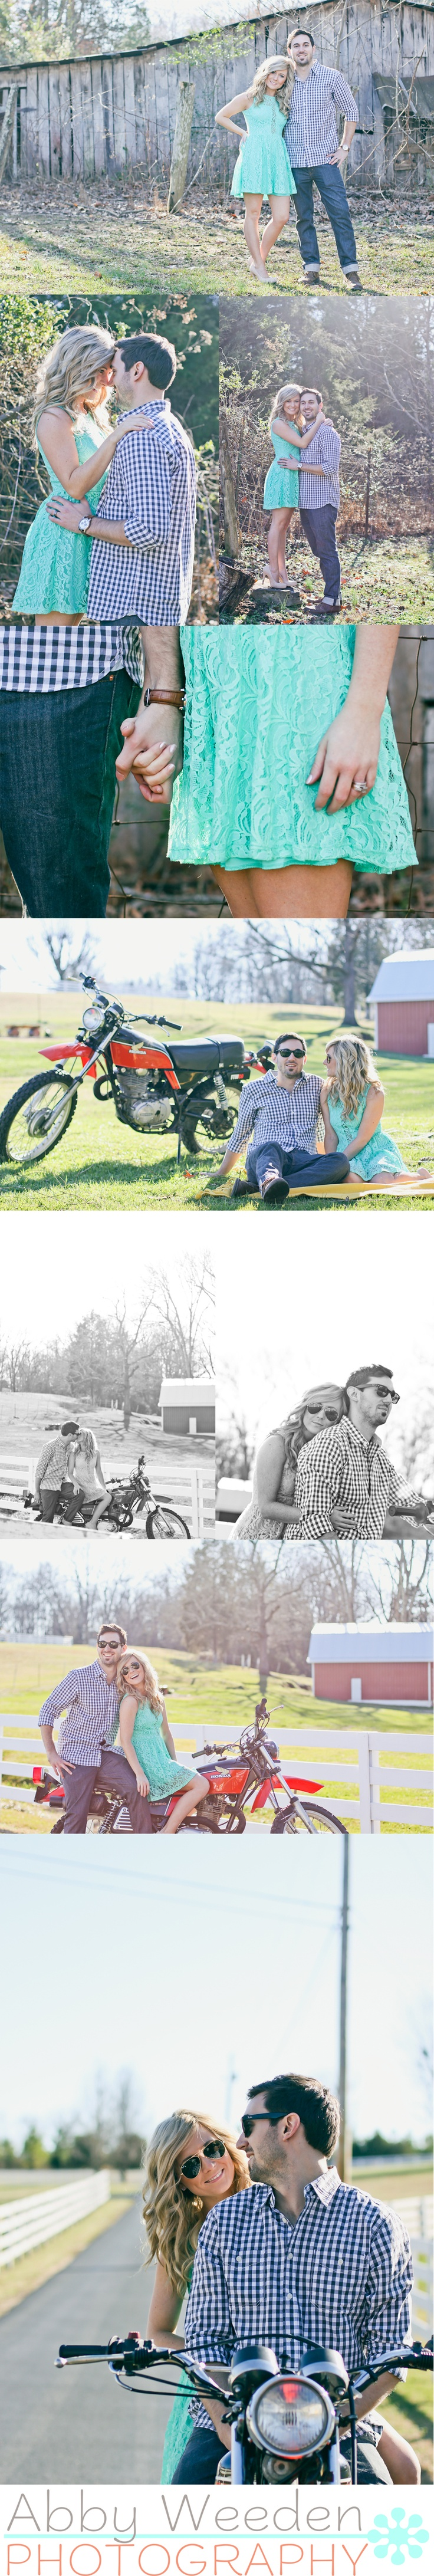 Tennessee photographer. Couple photography with motorcycle. Abby Weeden Photography.